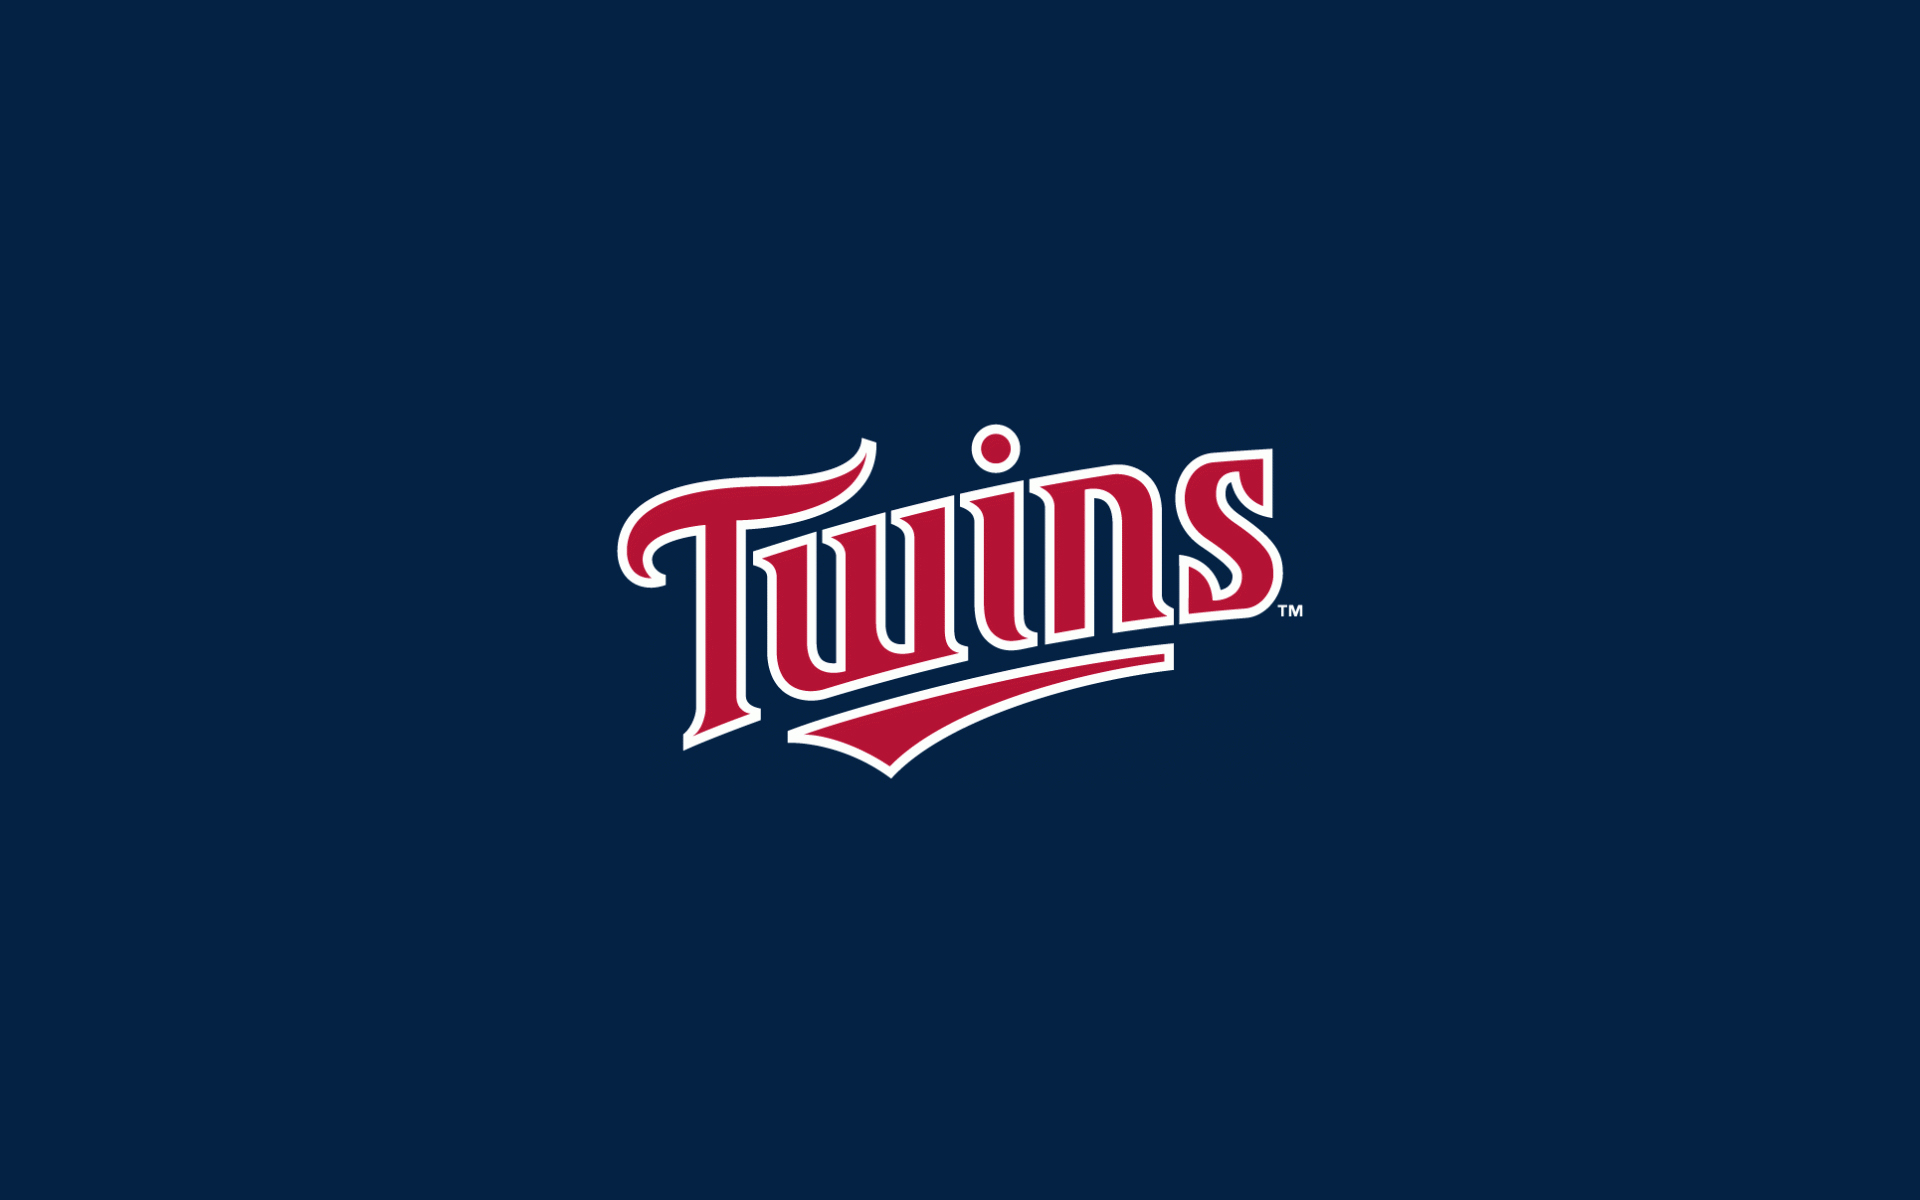 Minnesota Twins Wallpaper HD – 1920 x 1200 pixels – 290 kB